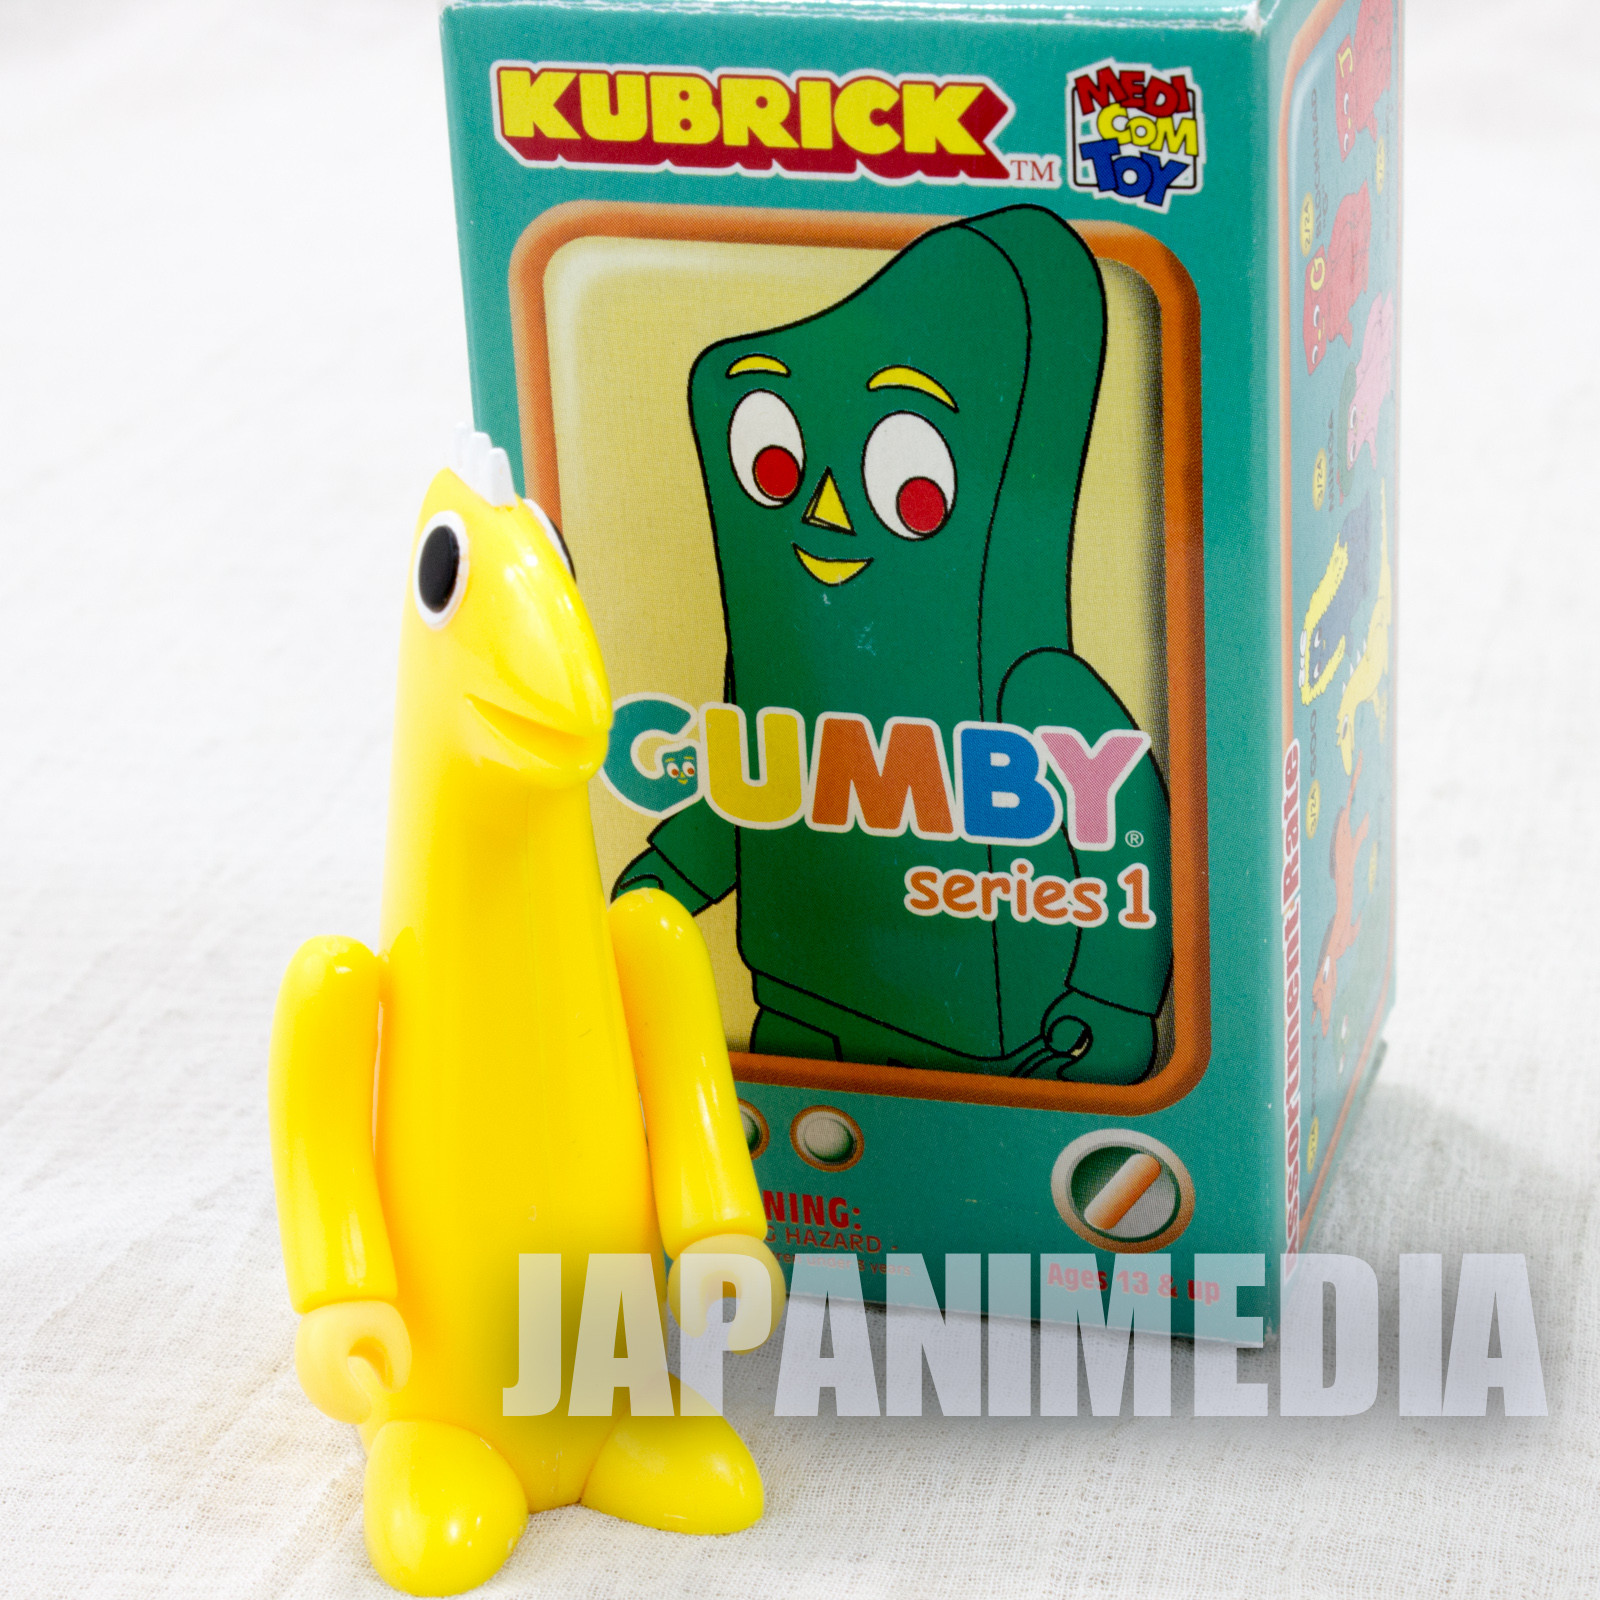 GUMBY Prickle Figure series 1 Kubrick Medicom Toy JAPAN